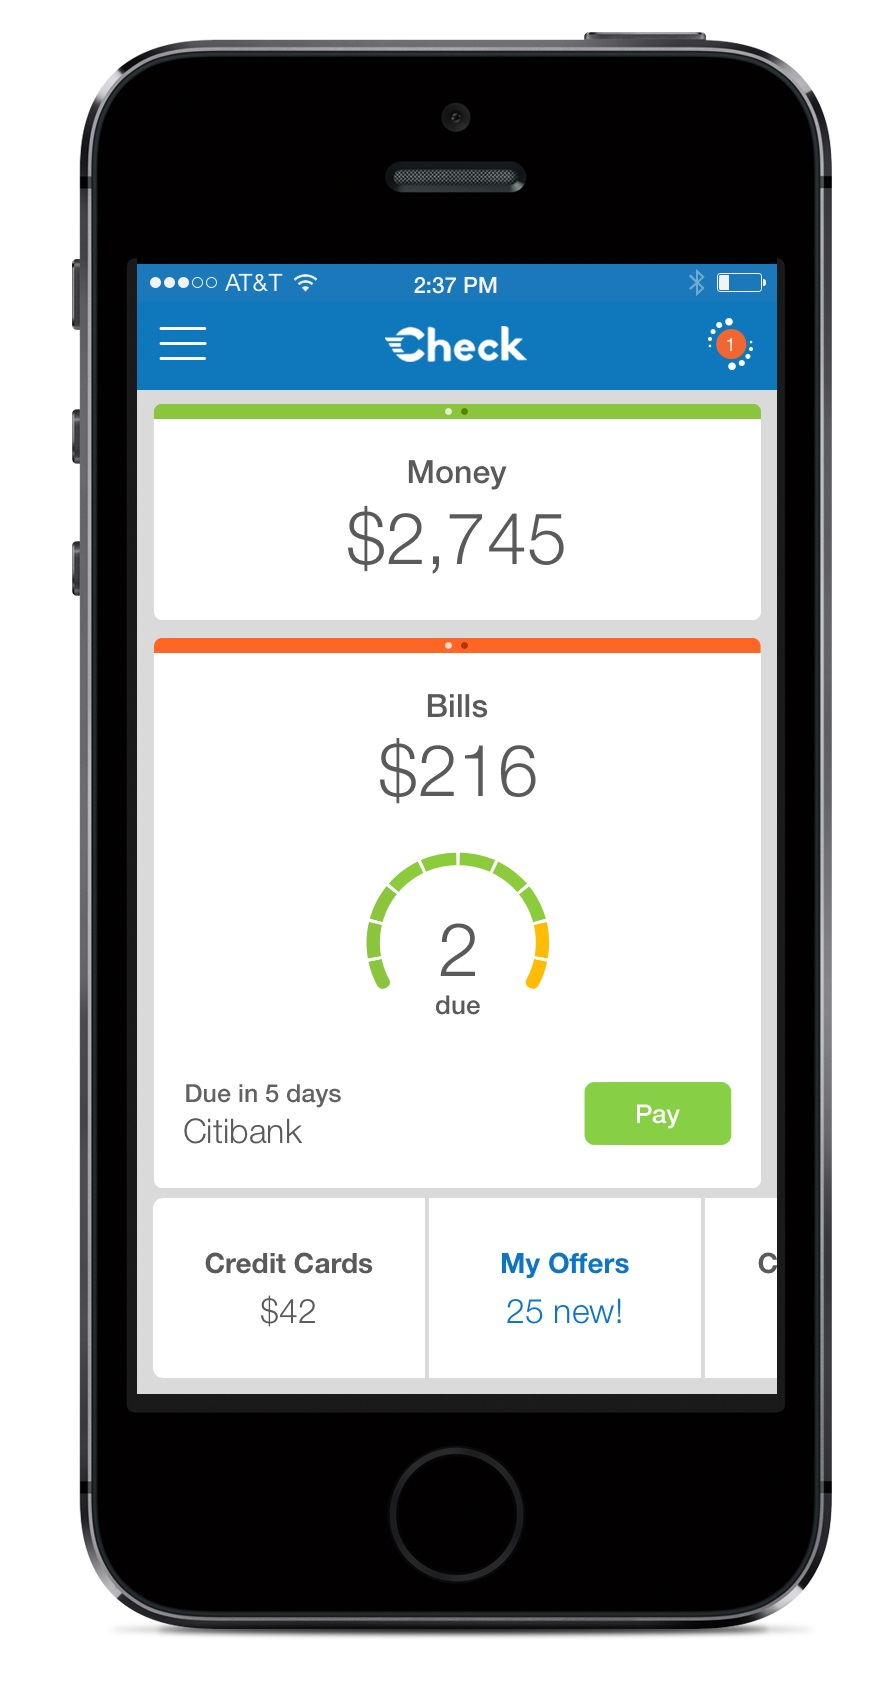 Review: Can the Check App Really Compete with Mint?